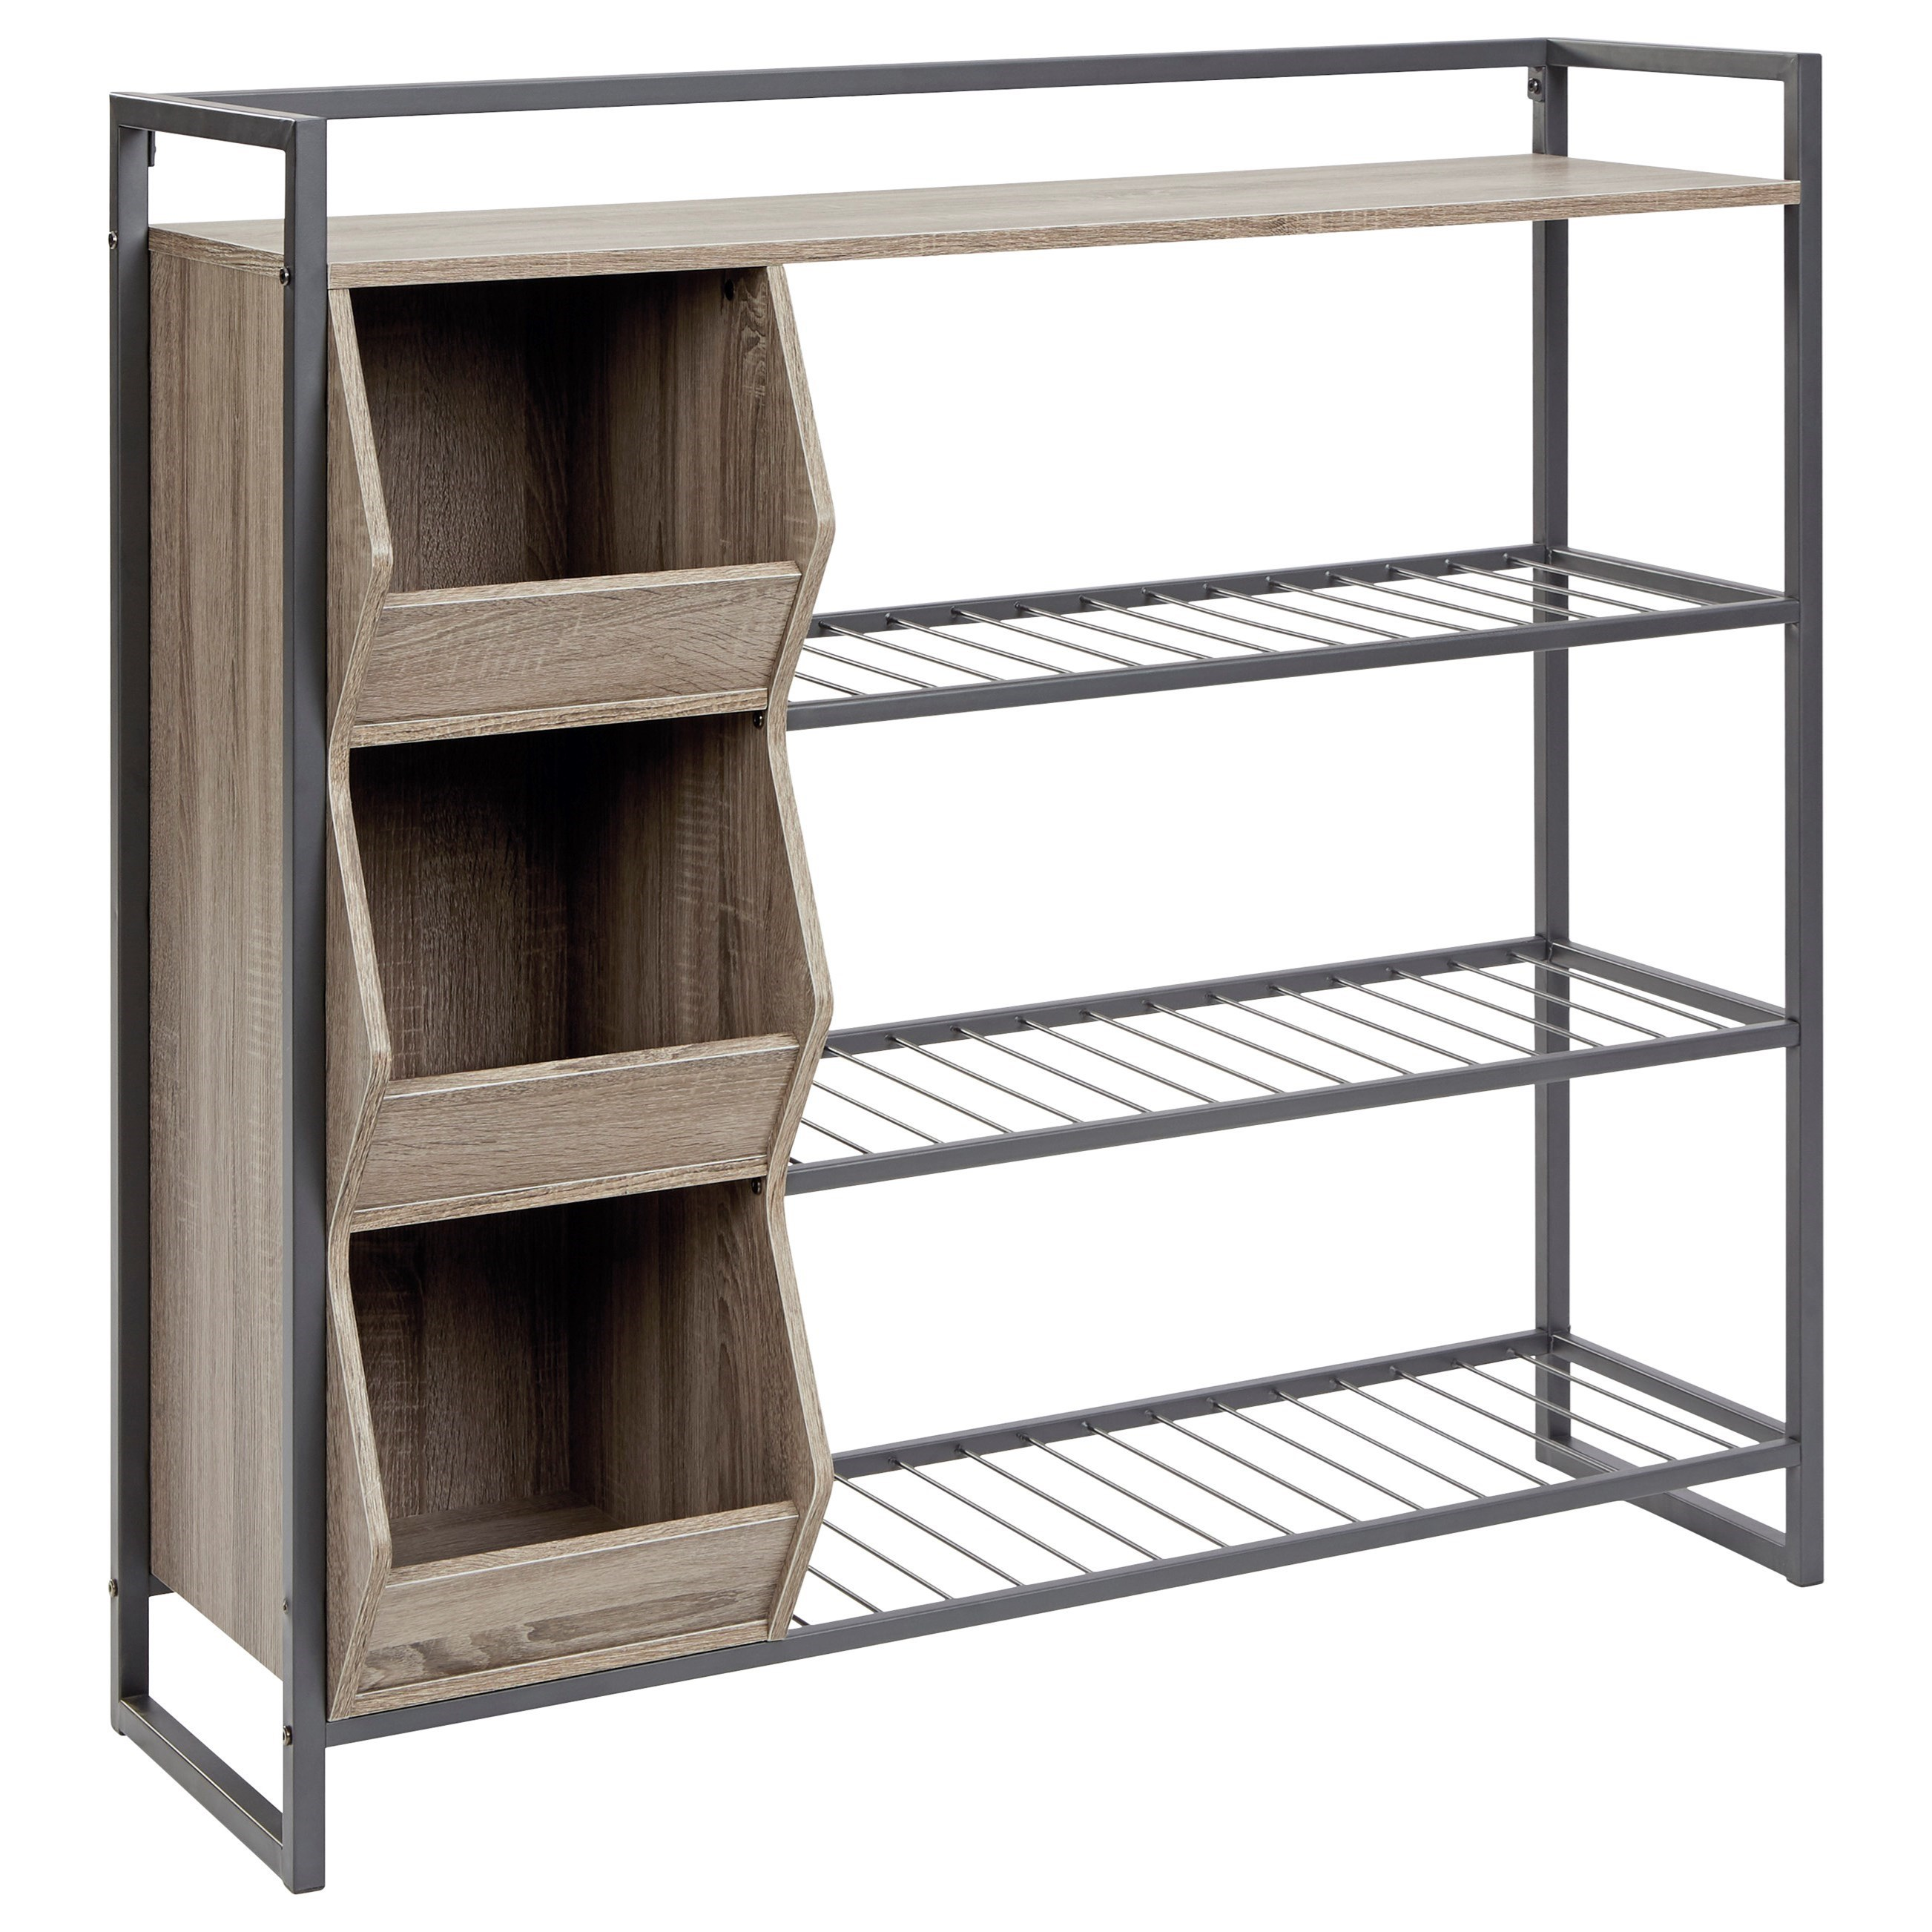 Maccenet Shoe Rack by Signature Design by Ashley at Zak's Warehouse Clearance Center